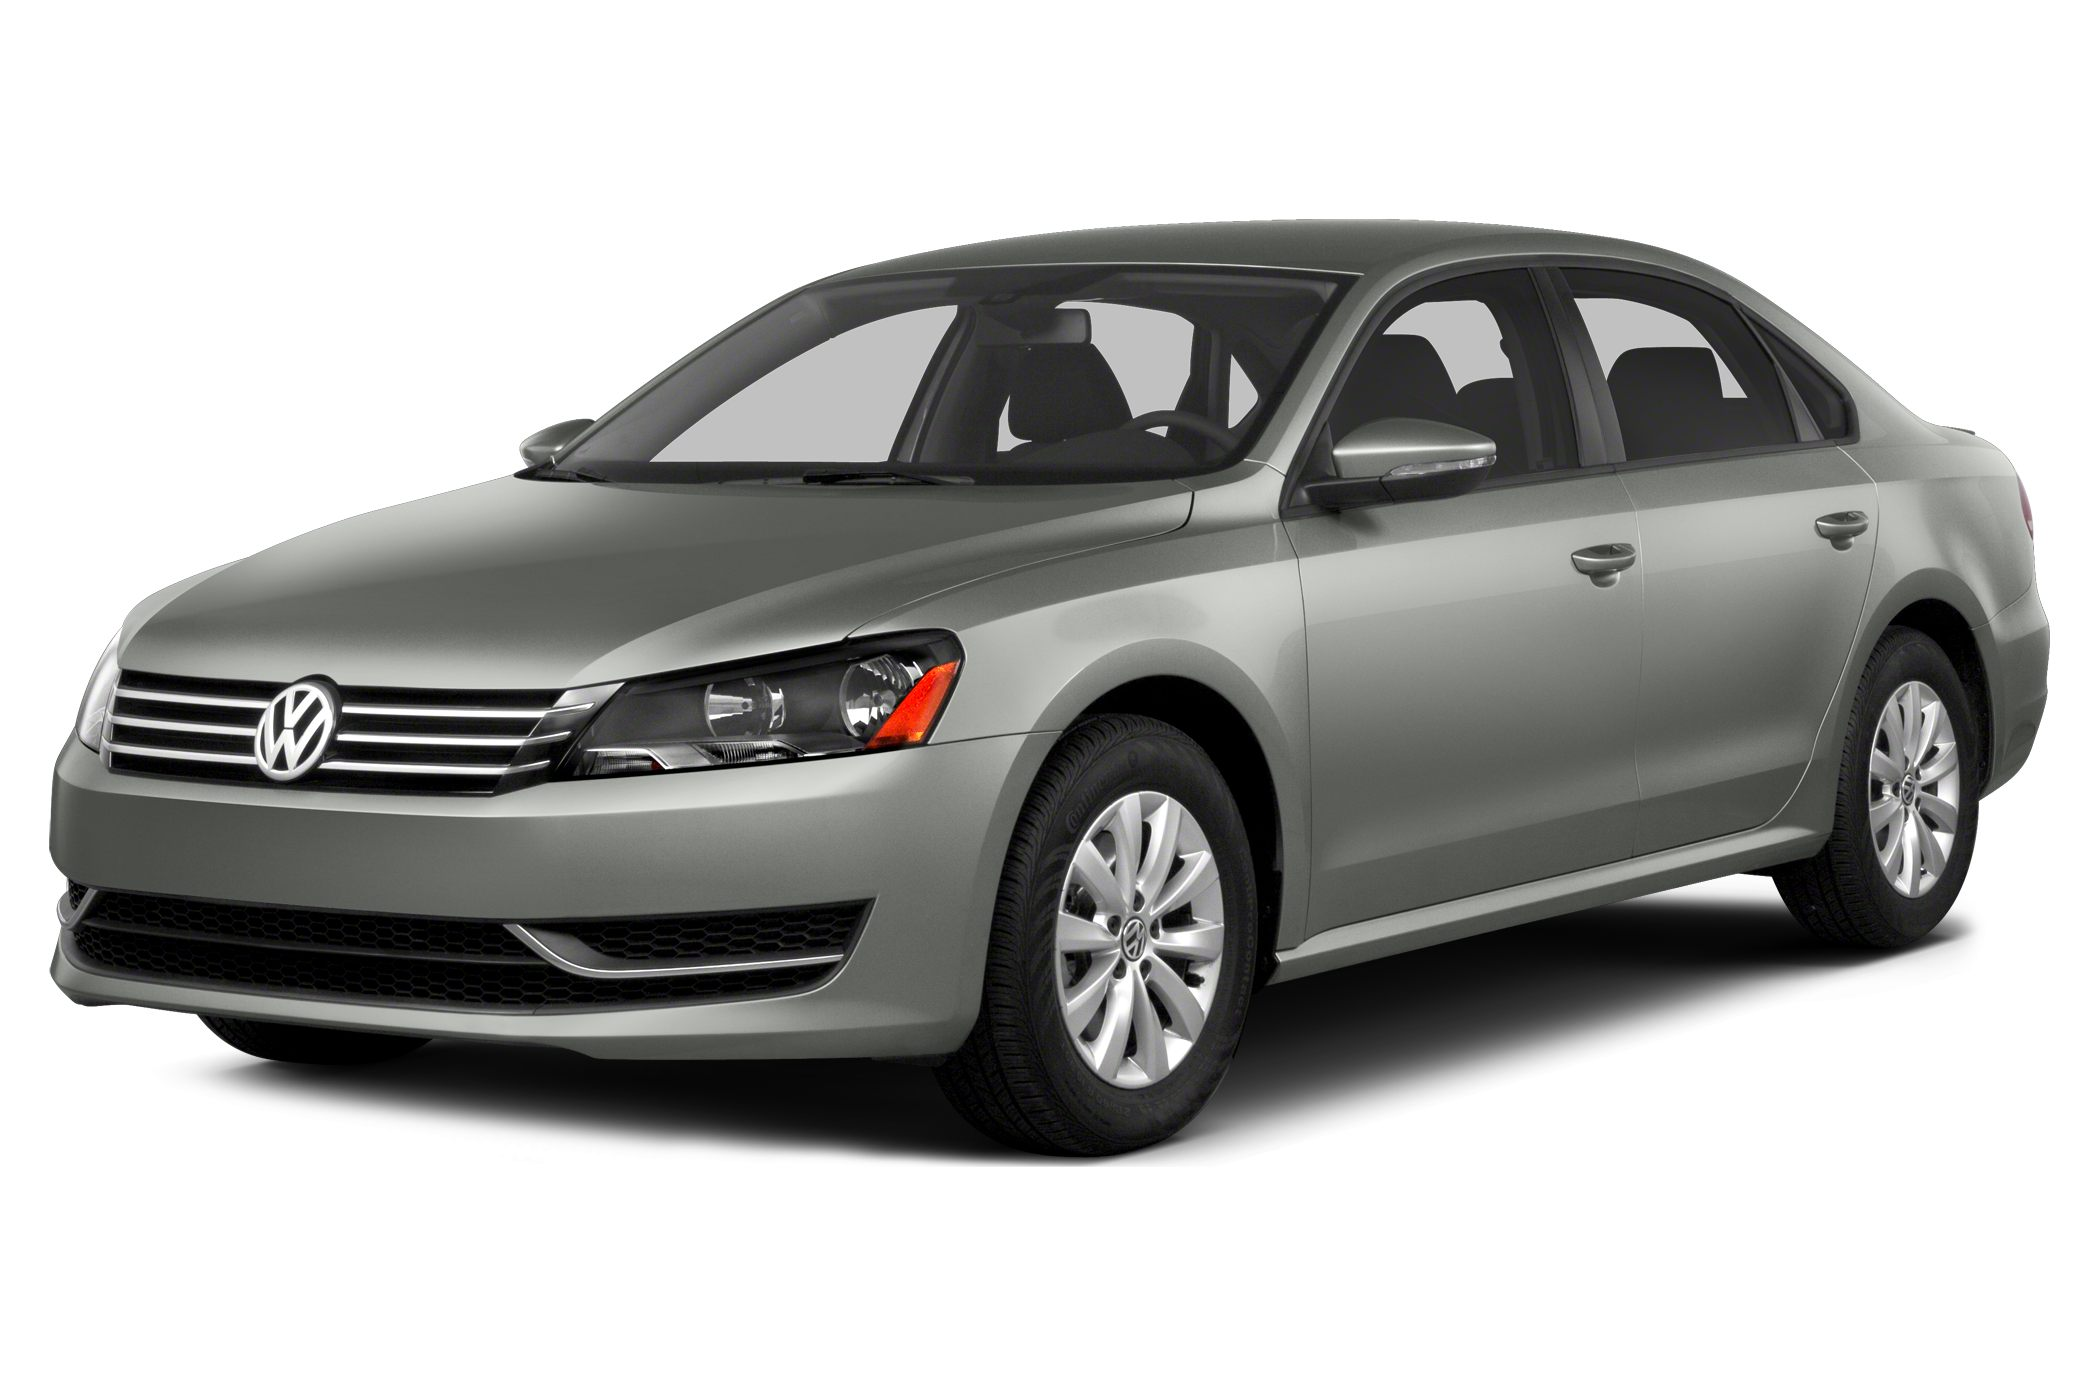 2015 Volkswagen Passat 1.8T Sport Sedan for sale in Chico for $28,000 with 178 miles.